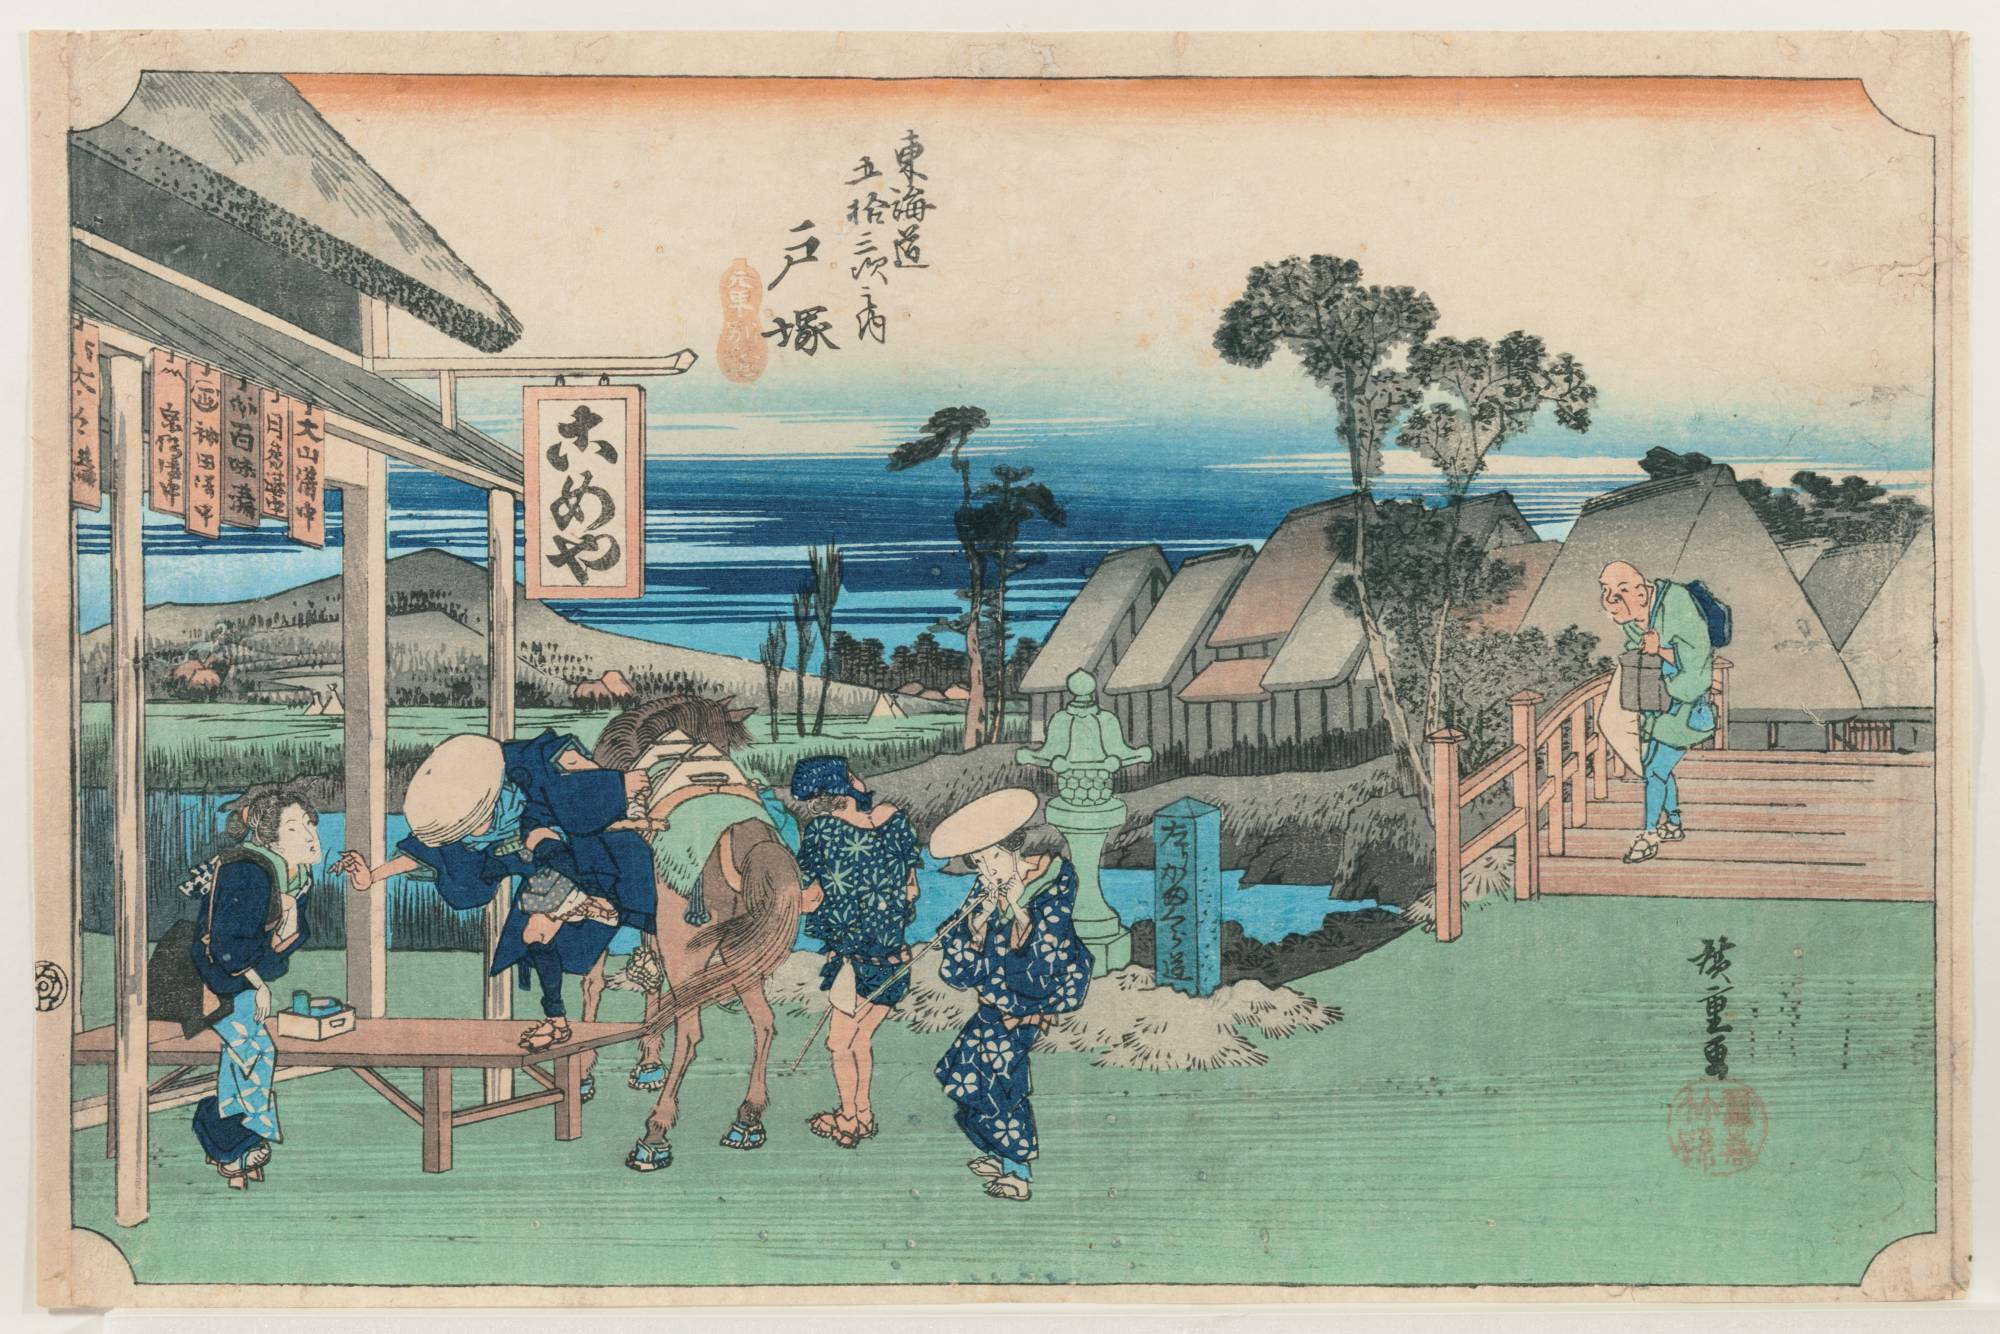 'Fifty-Three Stations of the Tokaido Road: Totsuka (Motomachi Detour),' Hoeido edition, by Utagawa Hiroshige I (circa 1833-34). The scenery along the Tokaido road spreads out beyond the eaves of the teahouse. A traveler appears to leap from his horse. Hiroshige's placement of his figures shows careful thought: two men with faces hidden flanking the horse, two women with faces visible to their right and left, and, farther back to the right, a lone old man approaching from the bridge. | YAMATANE MUSEUM OF ART